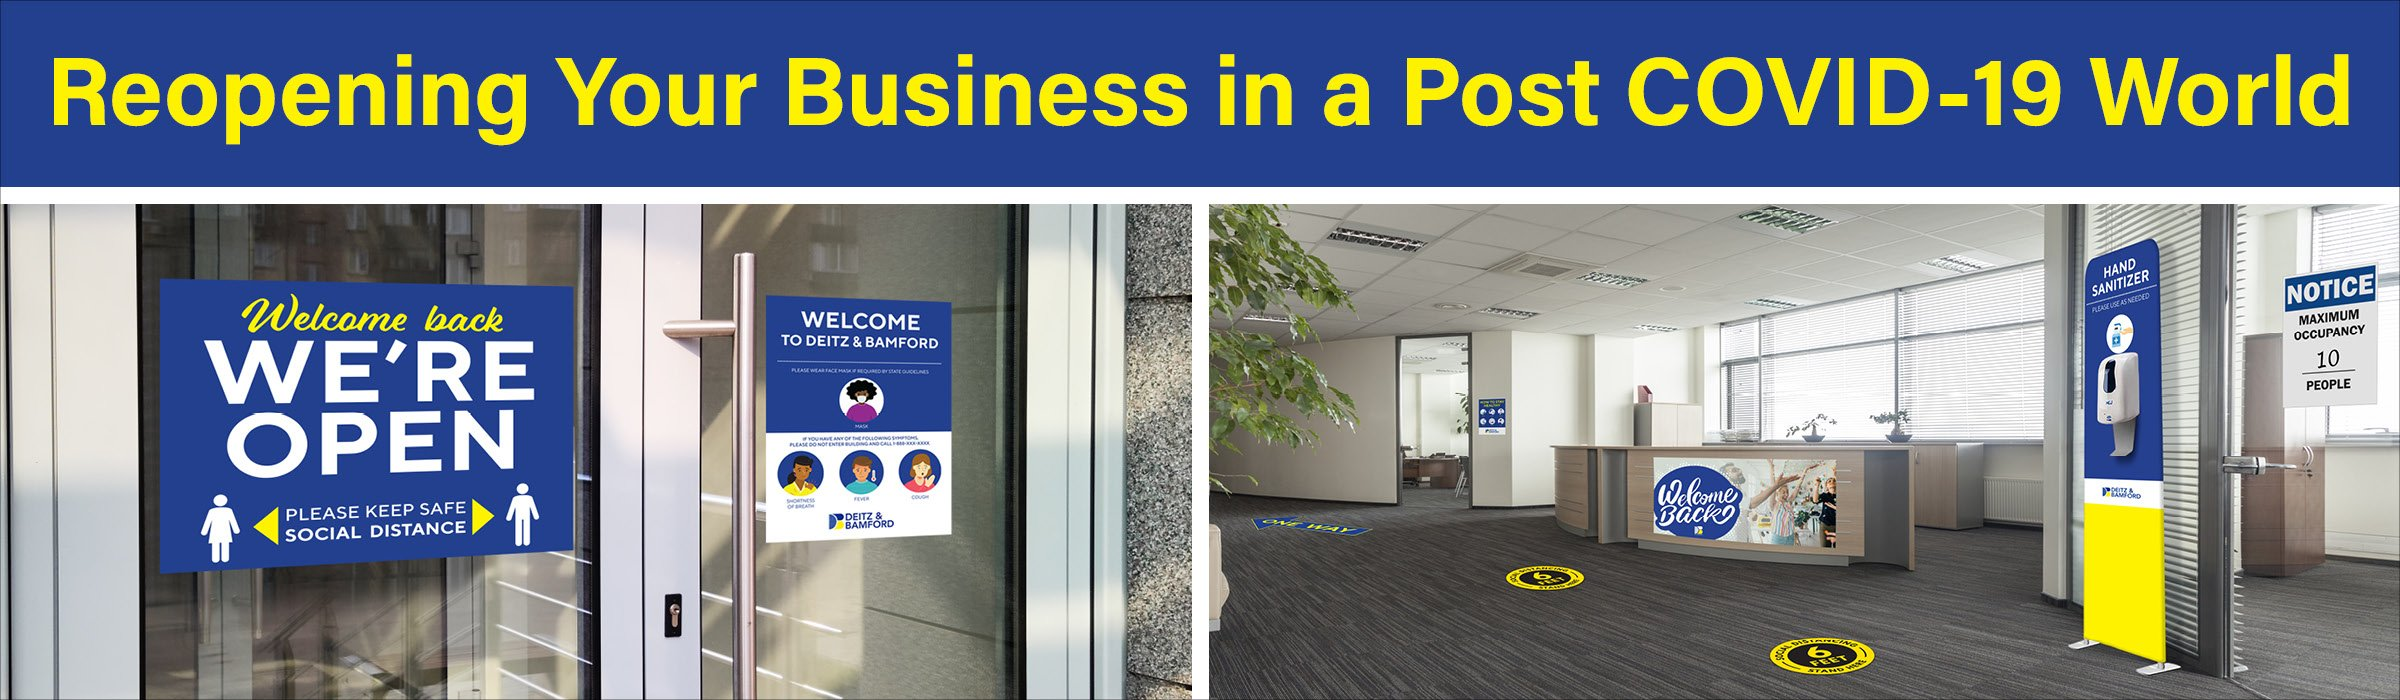 Reopening Your Business_blog